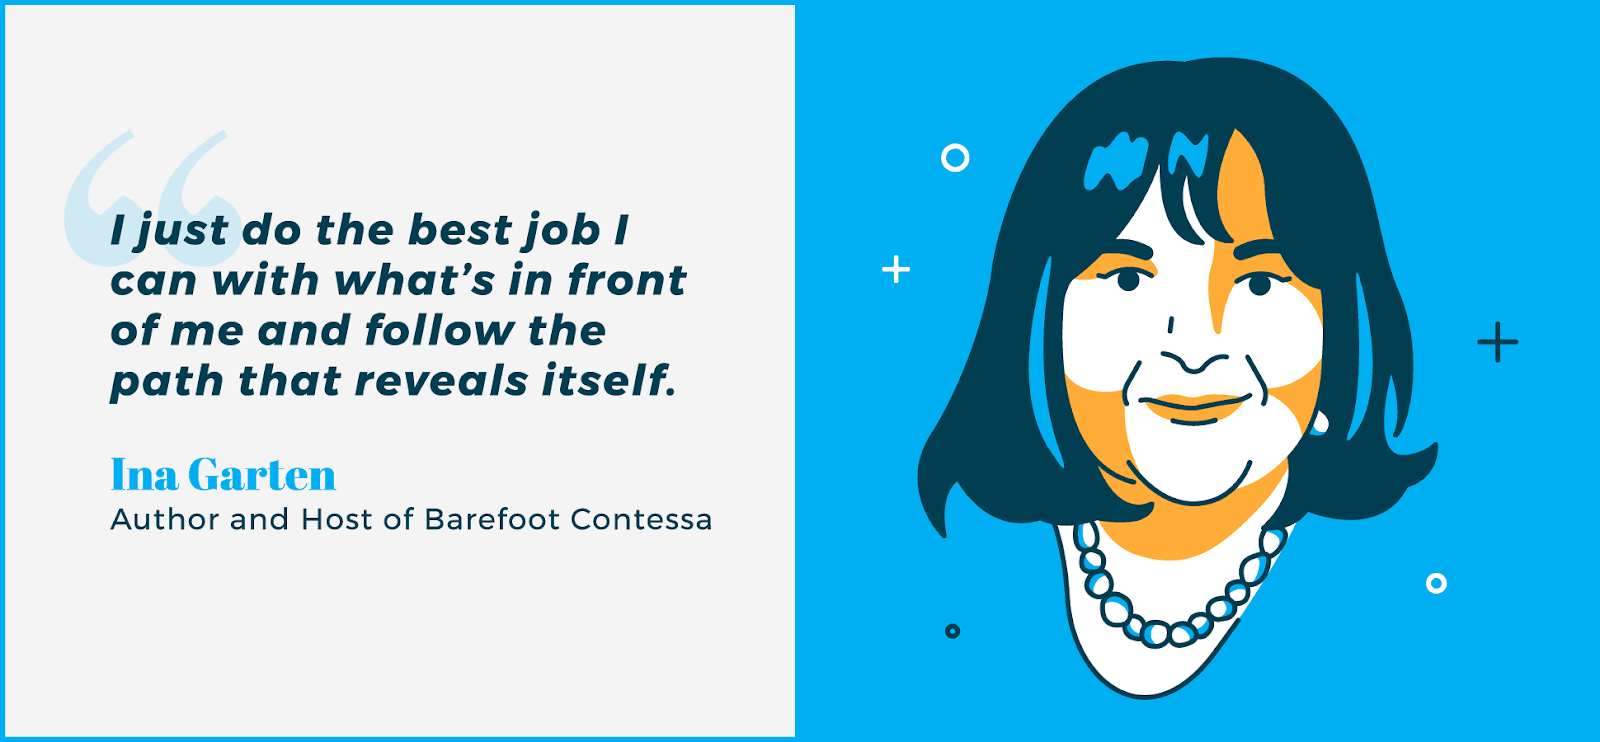 Boss lady quotes - Ina Garten